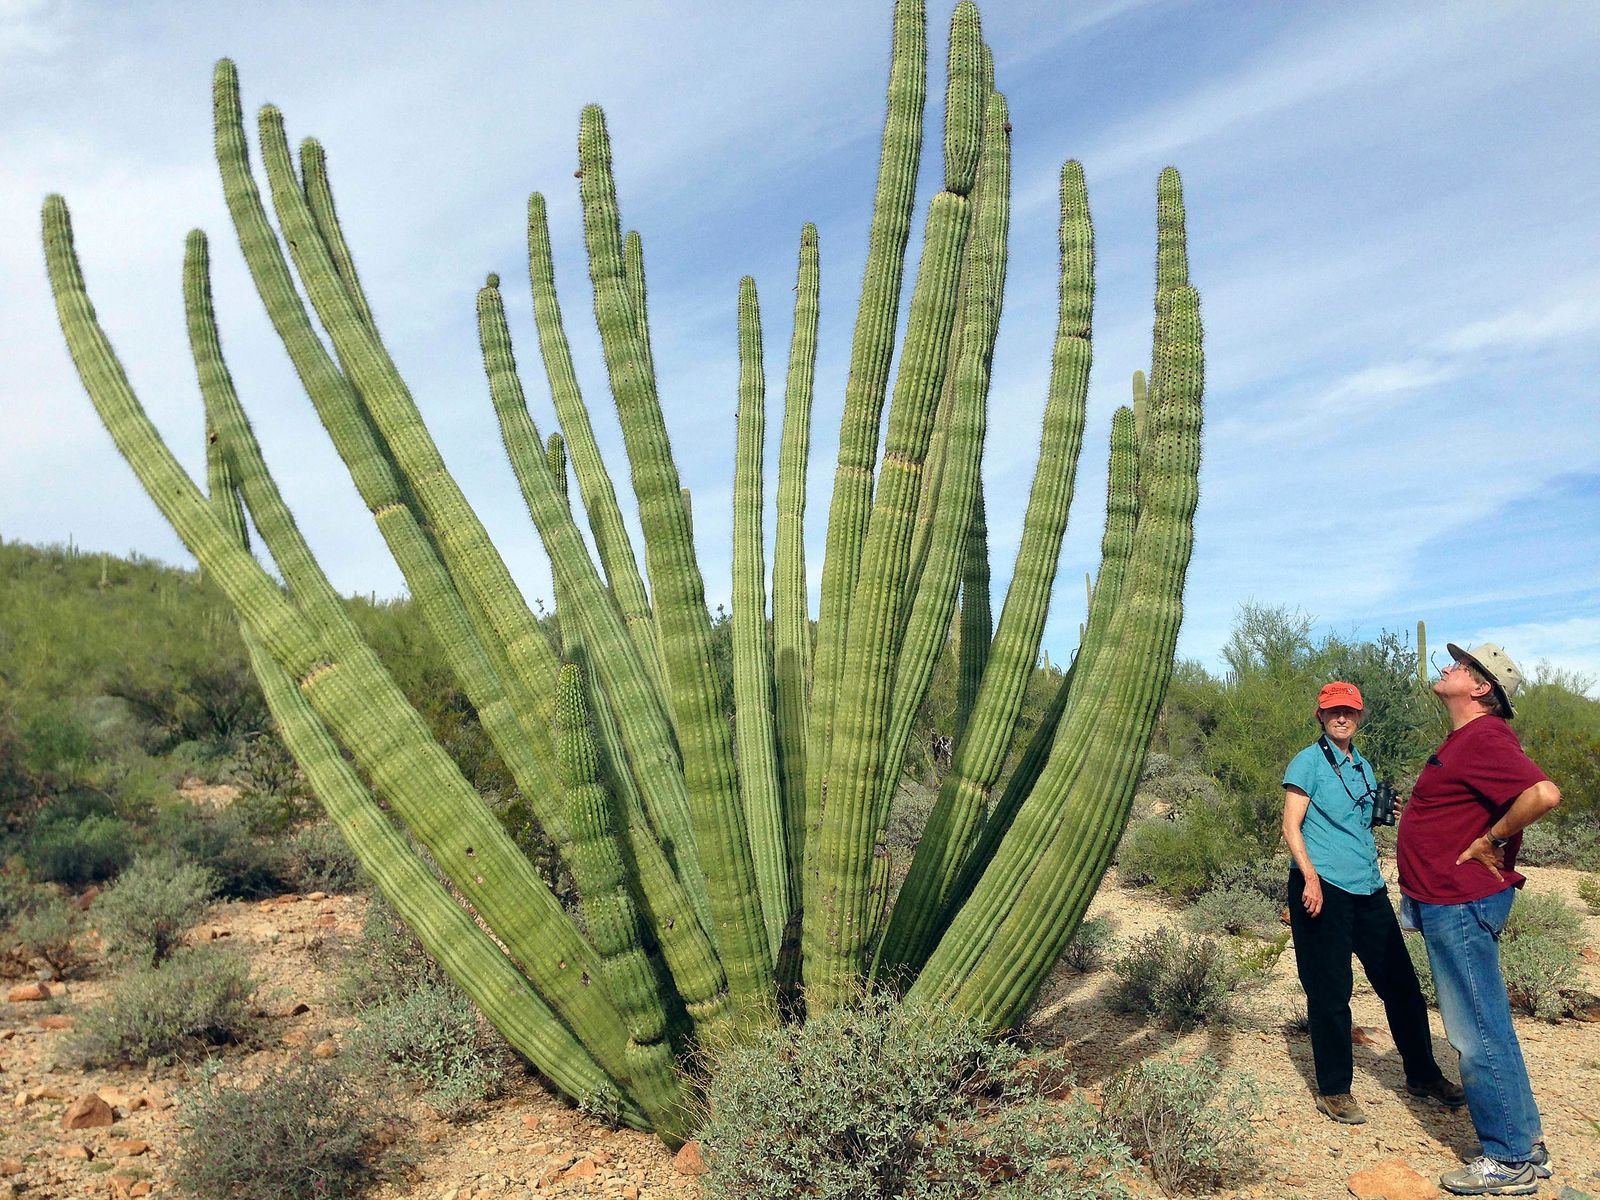 FILE - This Oct. 30, 2014 file photo shows visitors at Organ Pipe Cactus National Monument in Arizona. The federal government plans on replacing barriers through 100 miles of the southern border in California and Arizona, including through a this national monument and a wildlife refuge, according to government documents and environmental advocates. The Department of Homeland Security on Tuesday waived environmental and dozens of other laws to build more barriers along the southern border. (AP Photo/Astrid Galvan, File)